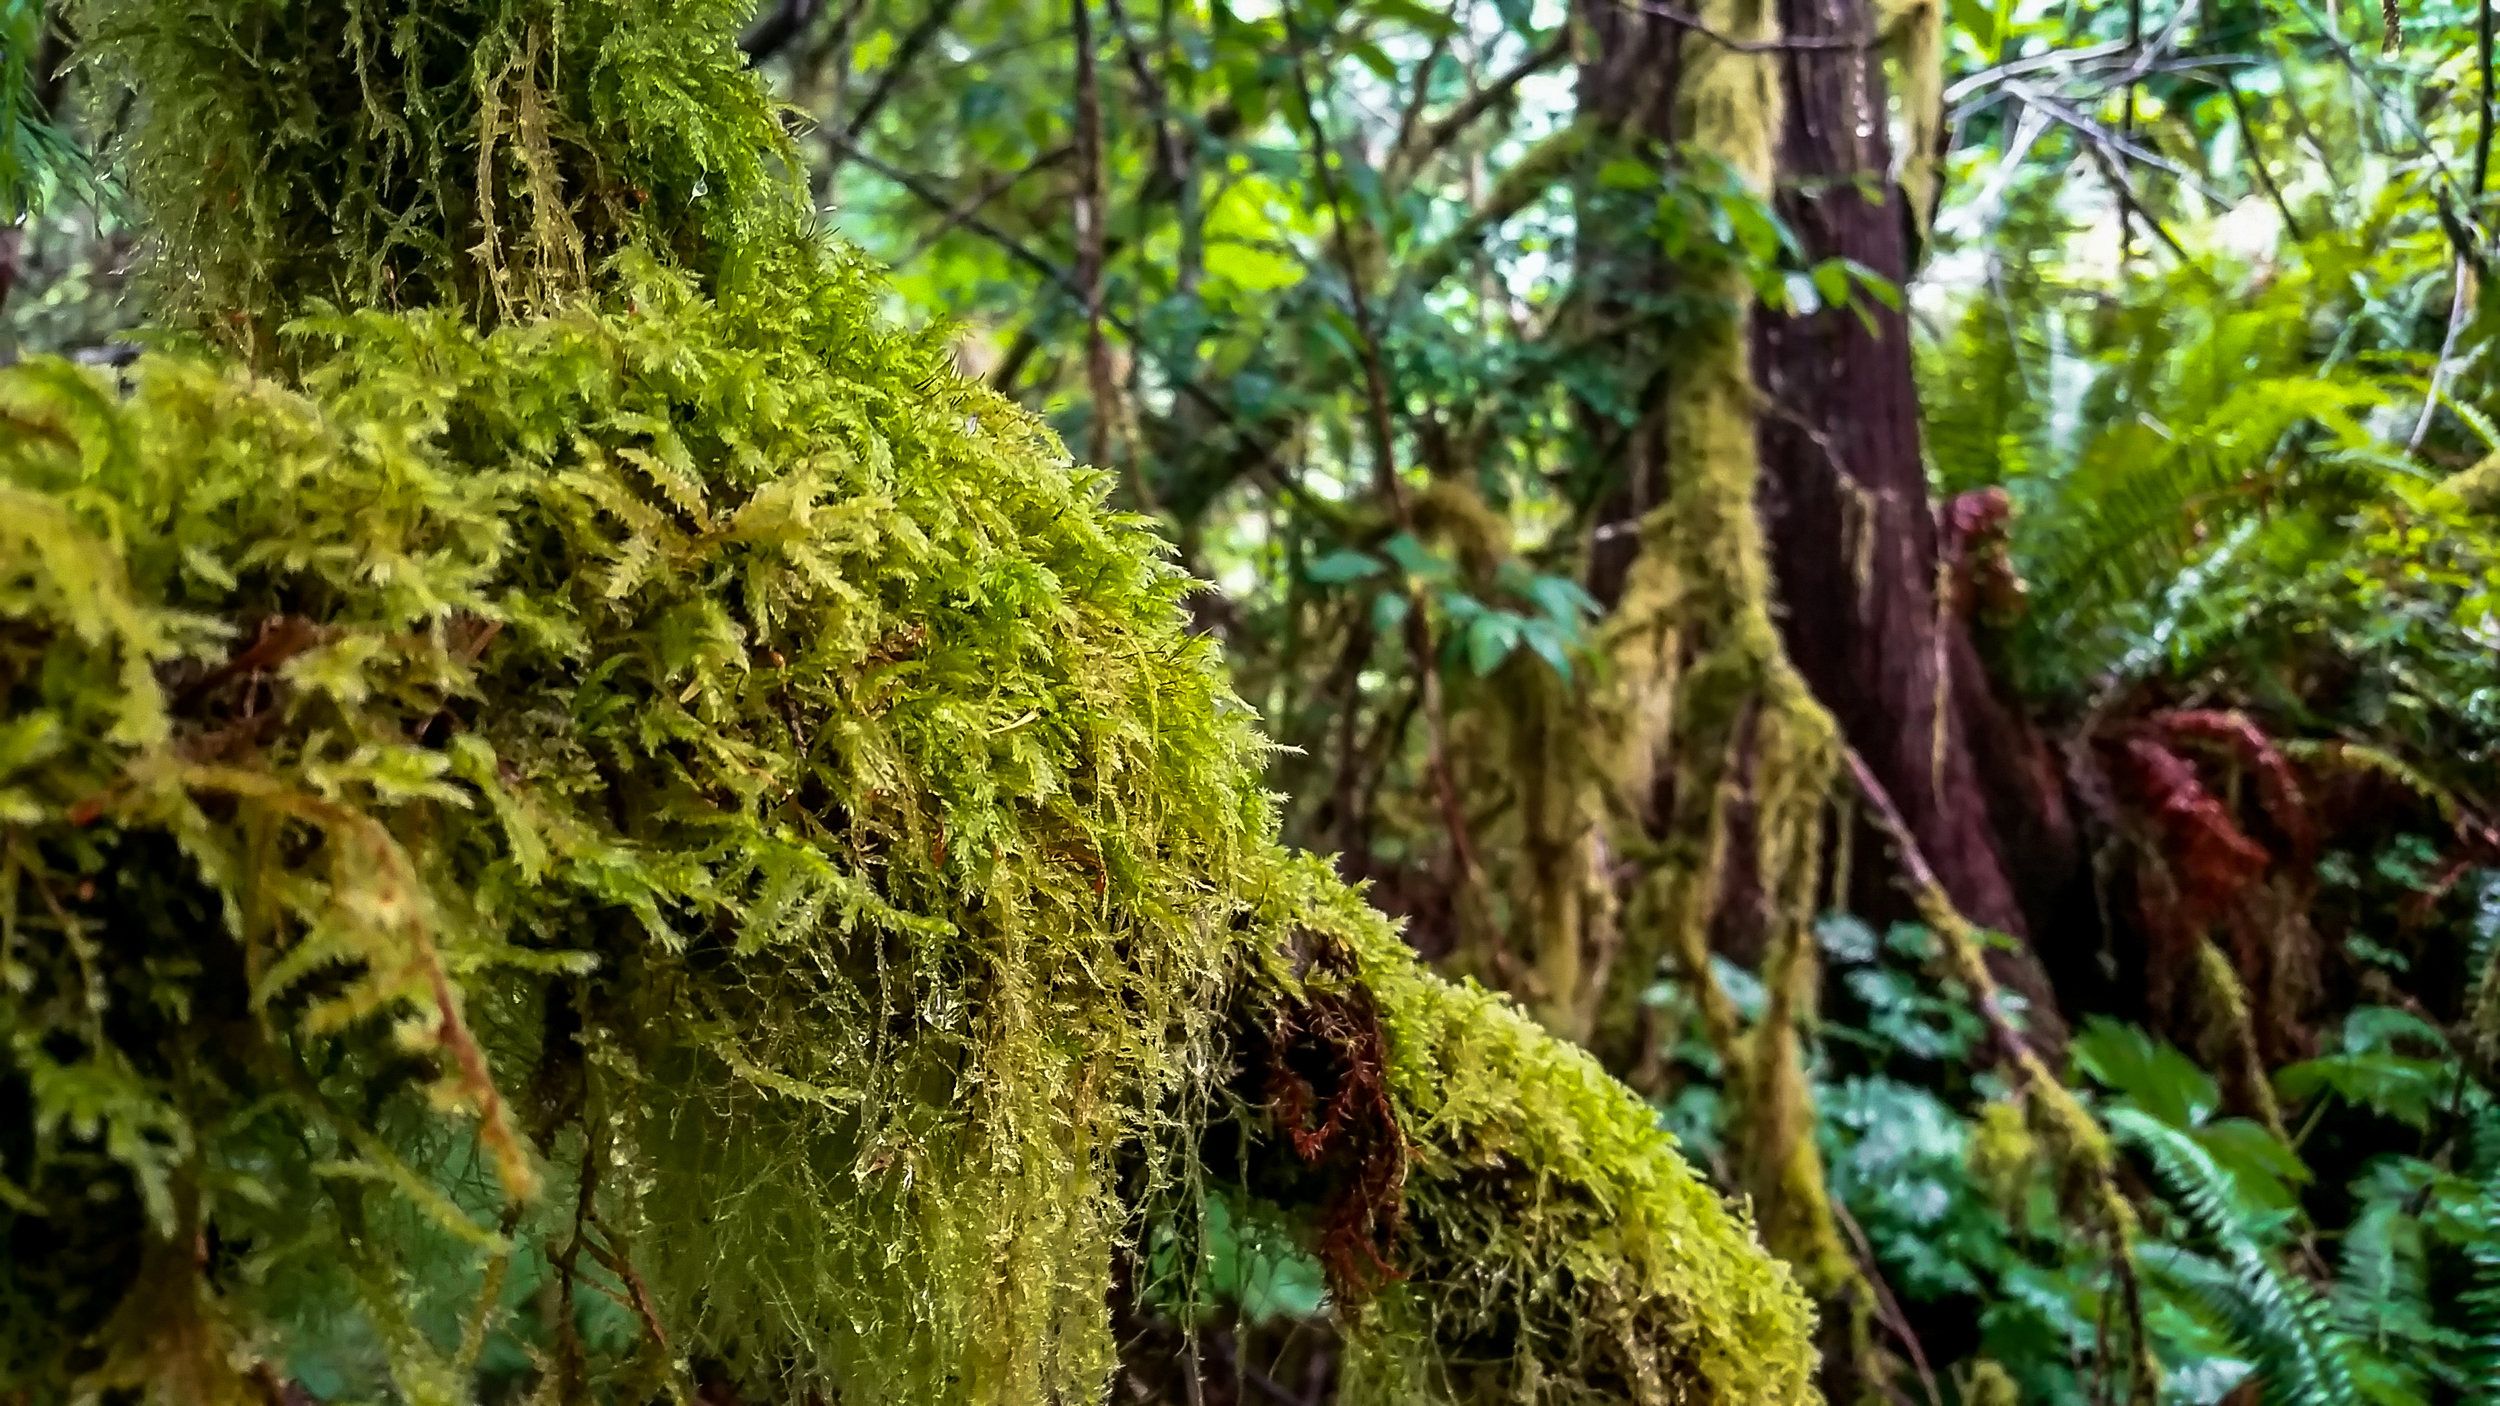 Our campsite. Olympic National Park has got some serious game when it comes to moss.